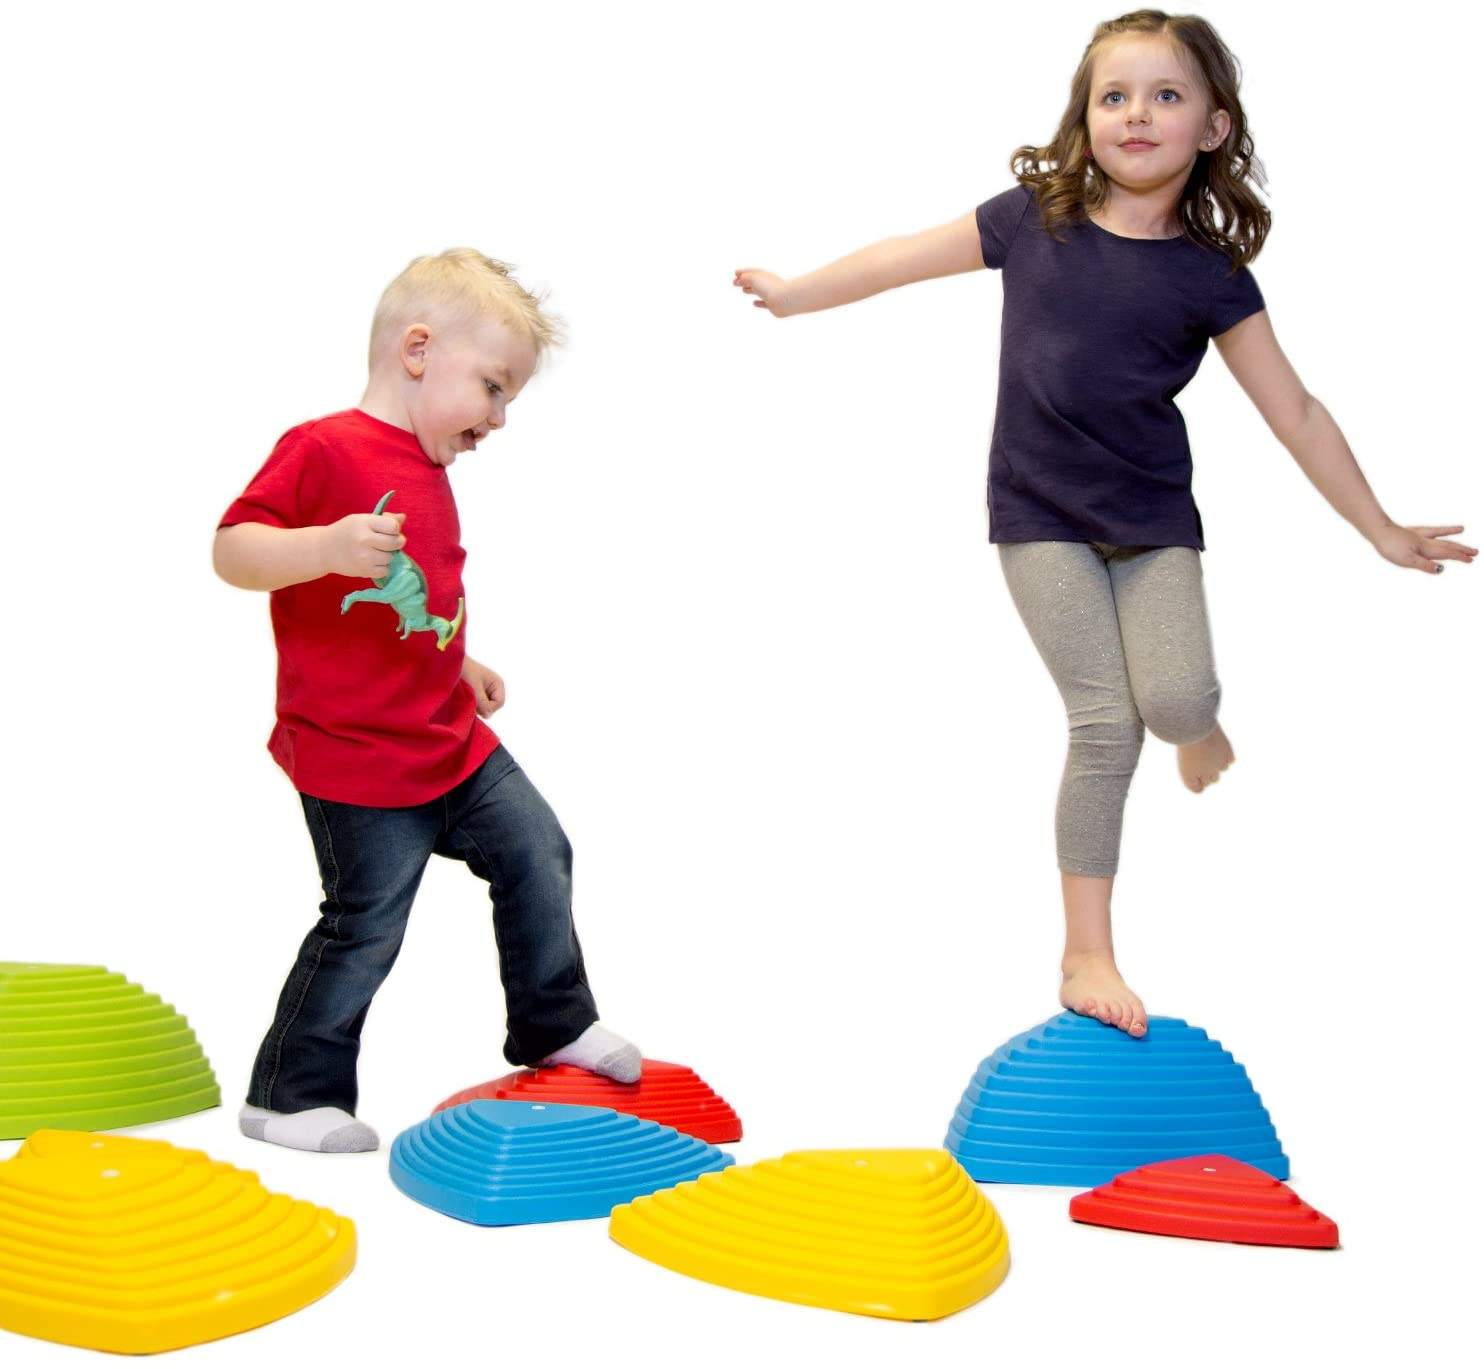 Balance Stepping Stones for kids balance beam montessori toys furniture Obstacle Course River Stones Indoor Outdoor Toy